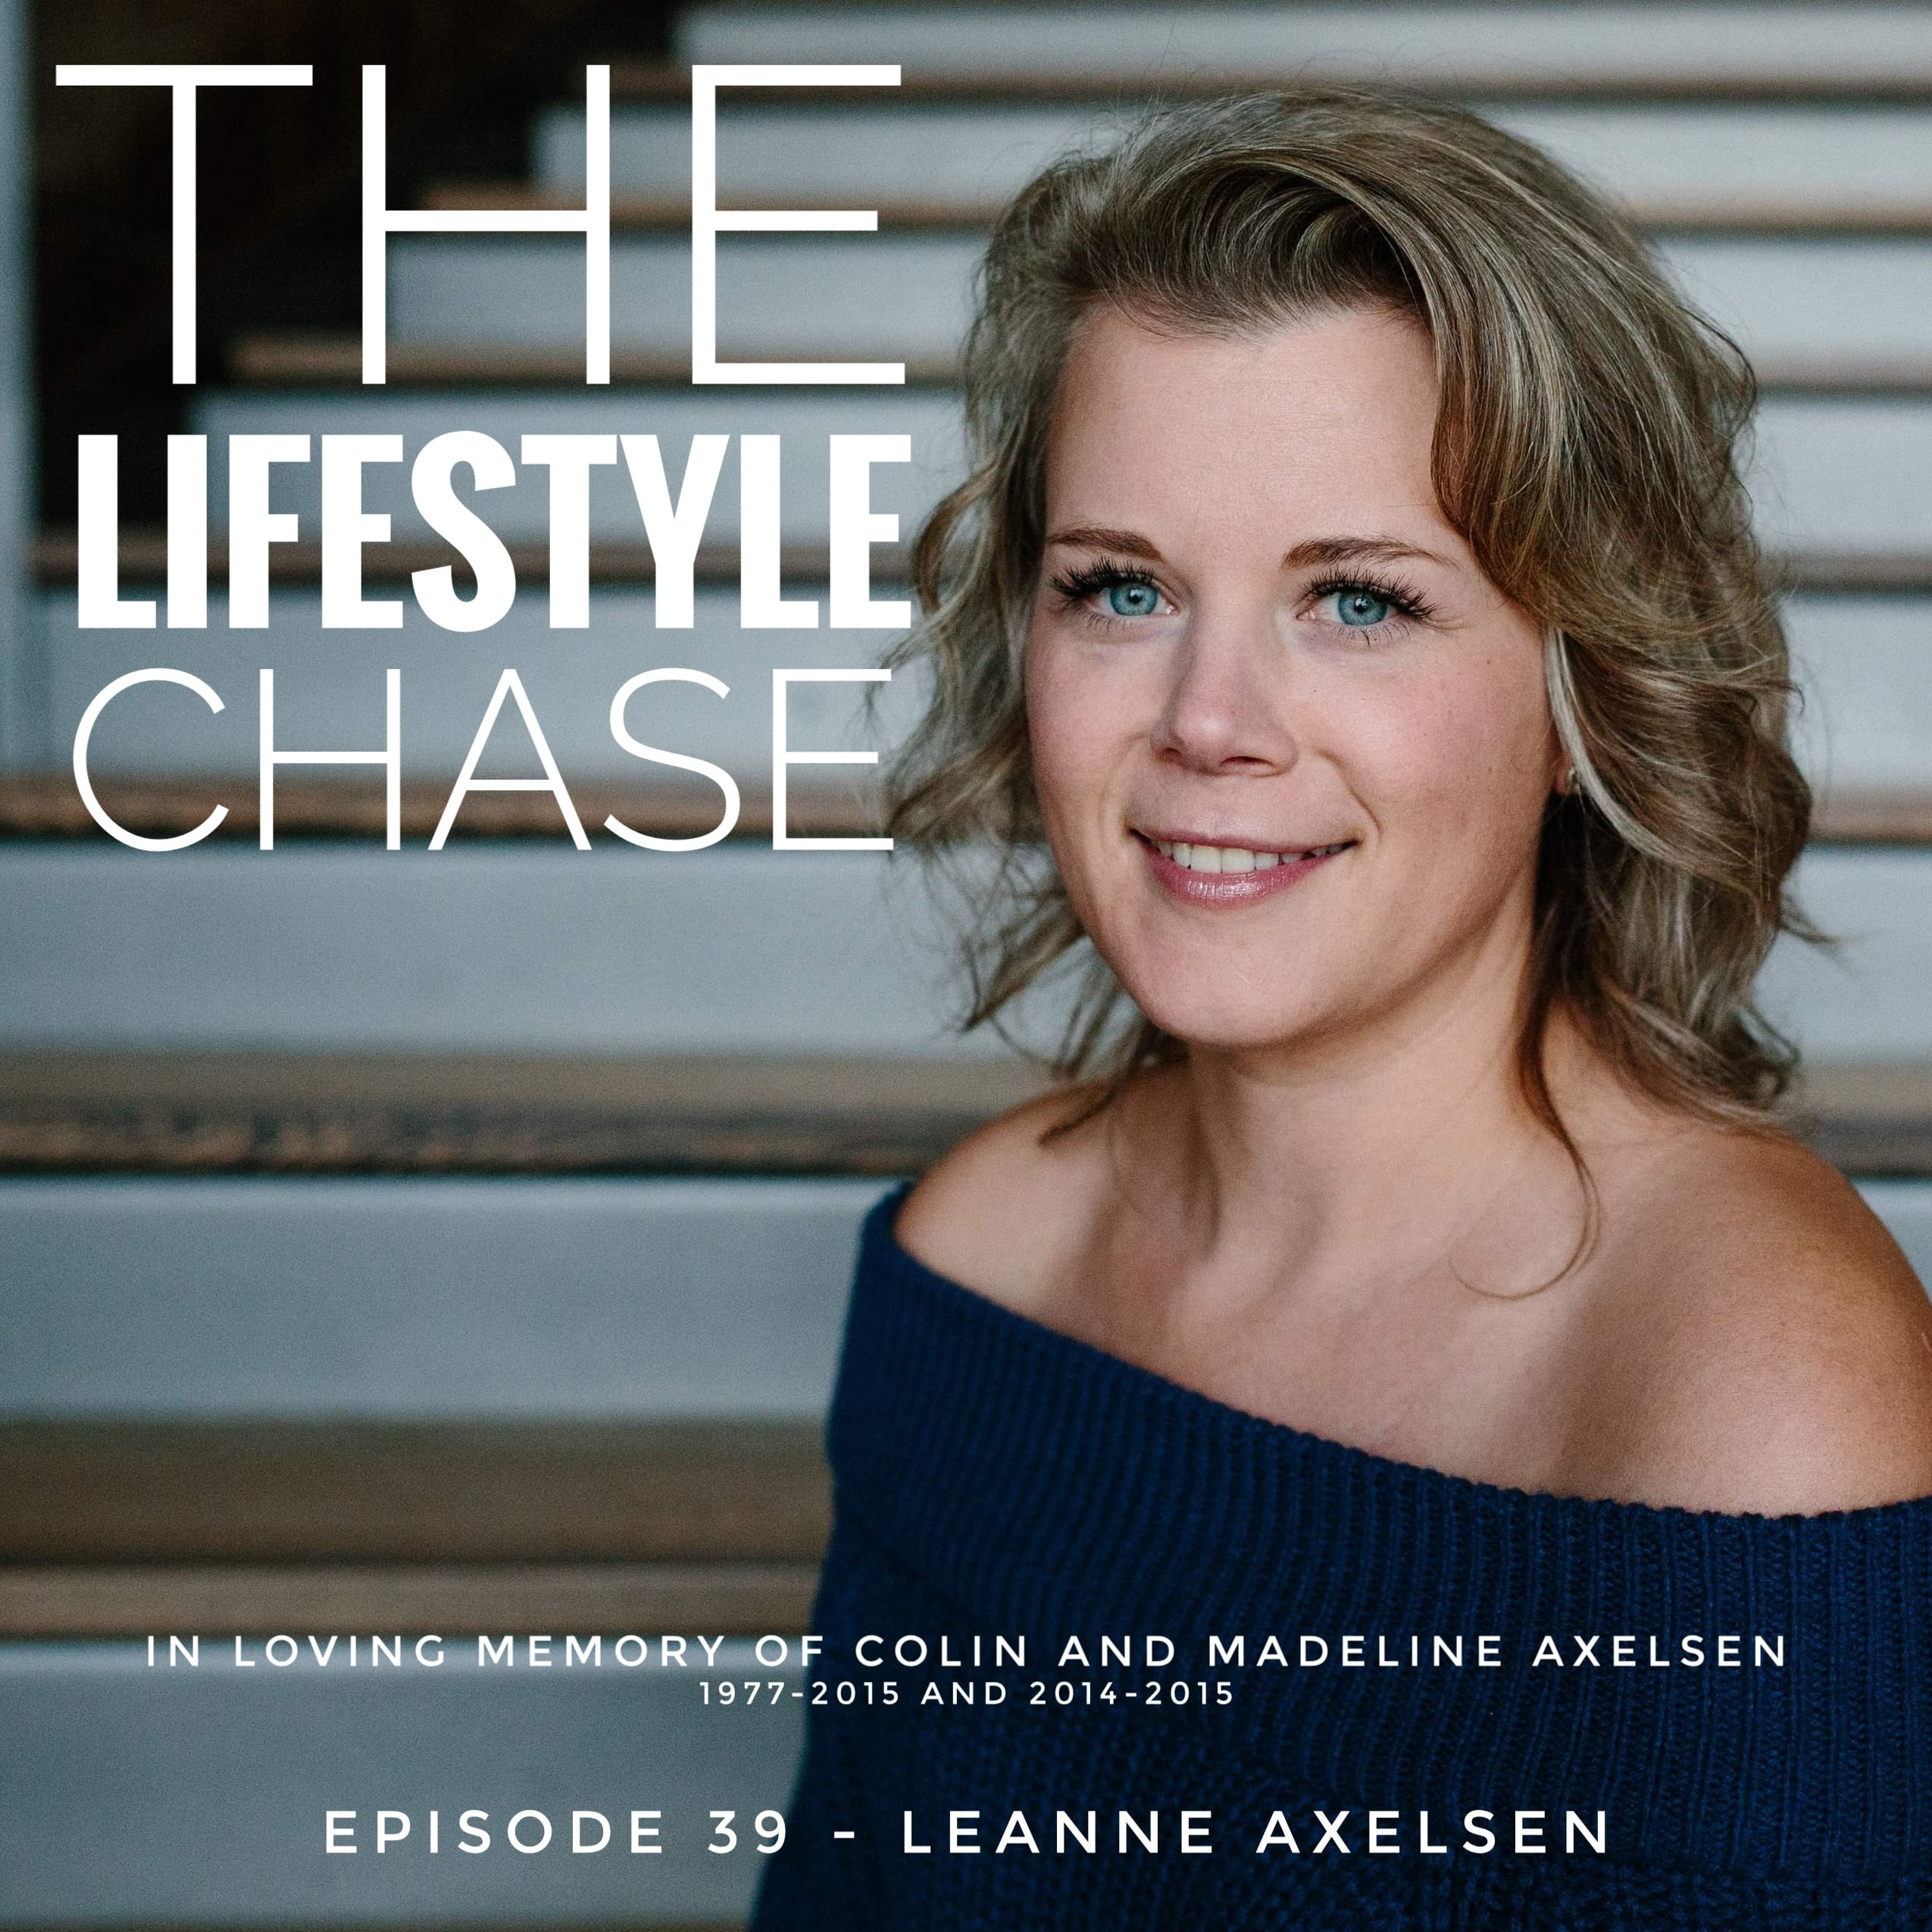 Episode 39 - In Loving Memory of Colin and Madeline Axelsen with Special Guest Leanne Axelsen